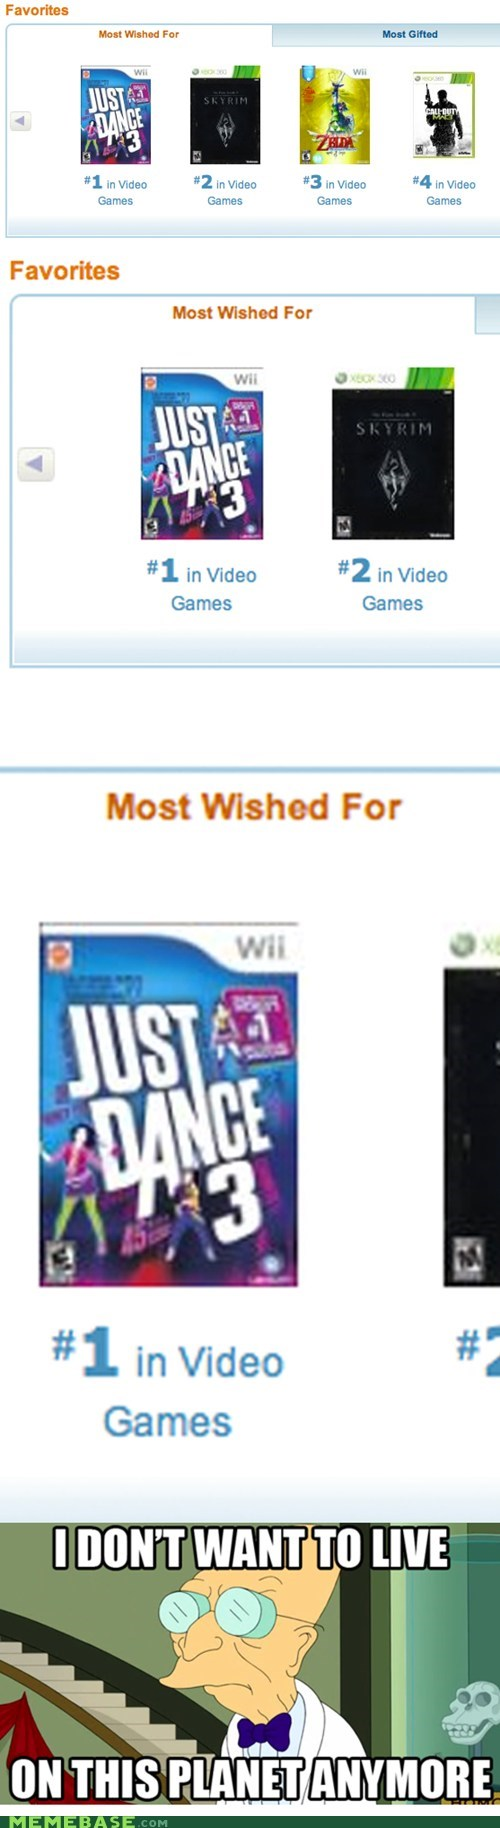 dancing fus ro dah games i dont want to live on this planet anymore seller video games